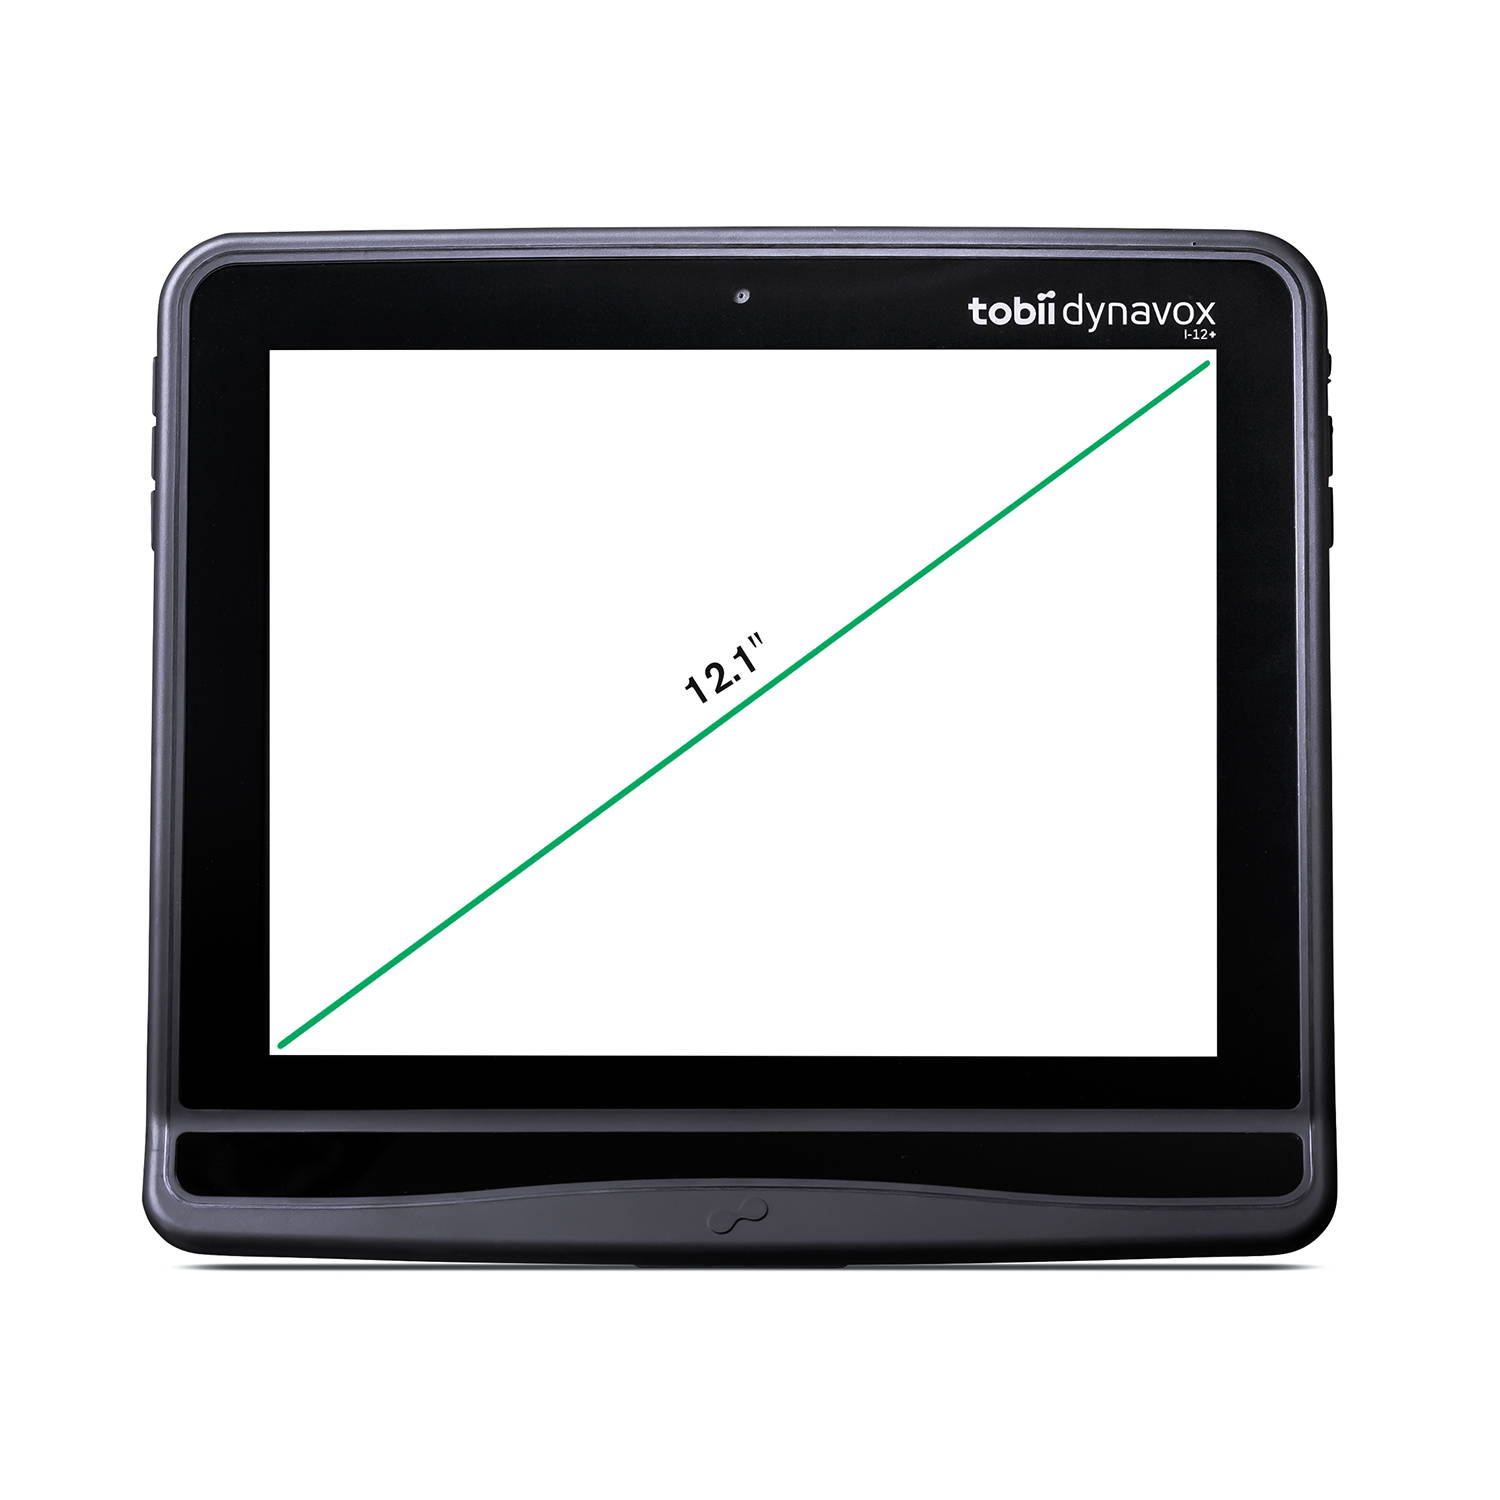 I-12+ device measurements